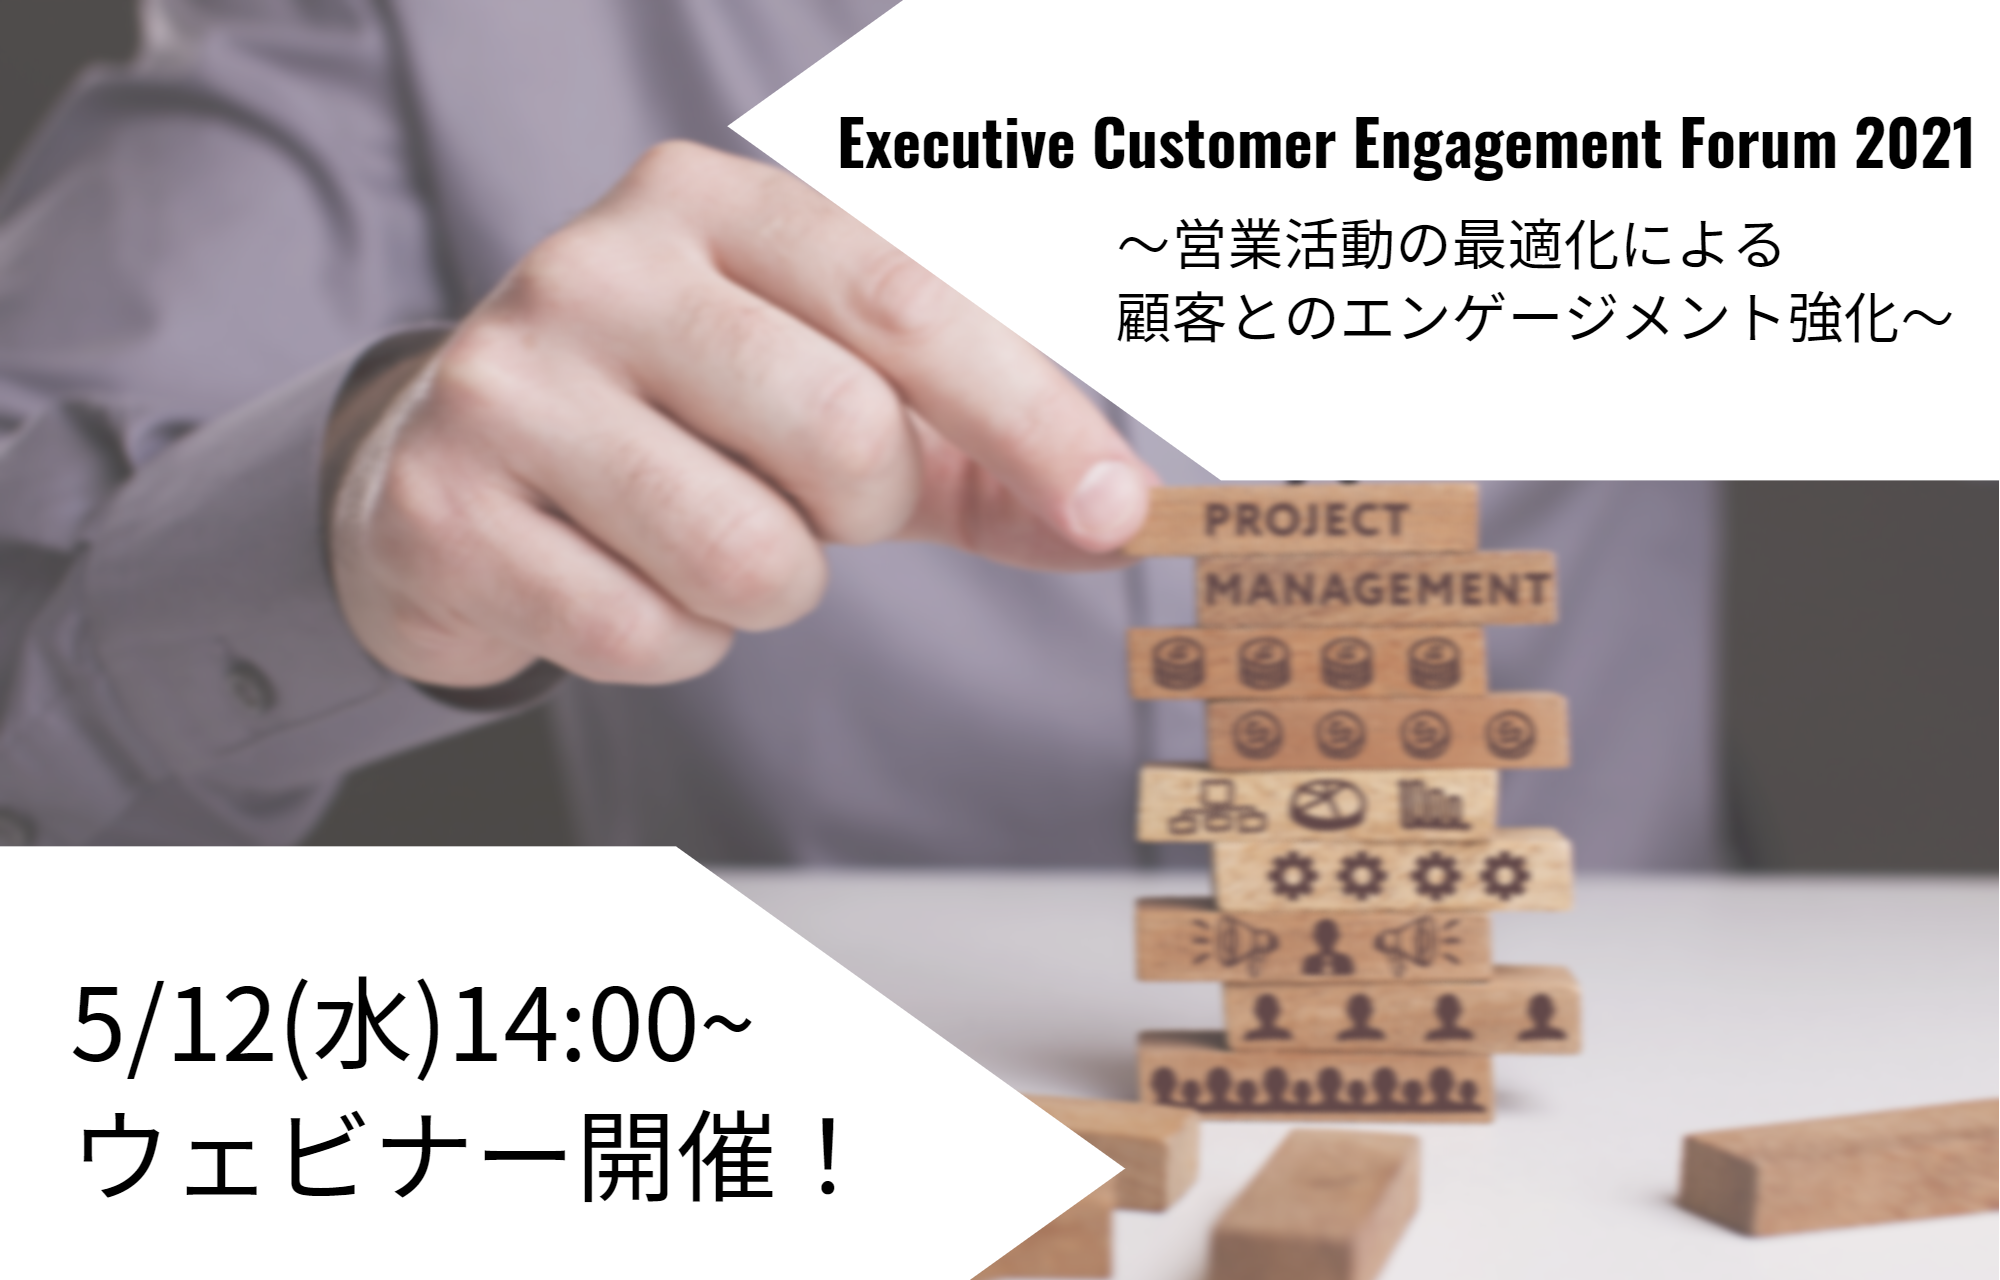 5月12日(水)開催 【Executive Customer Engagement Forum 2021】